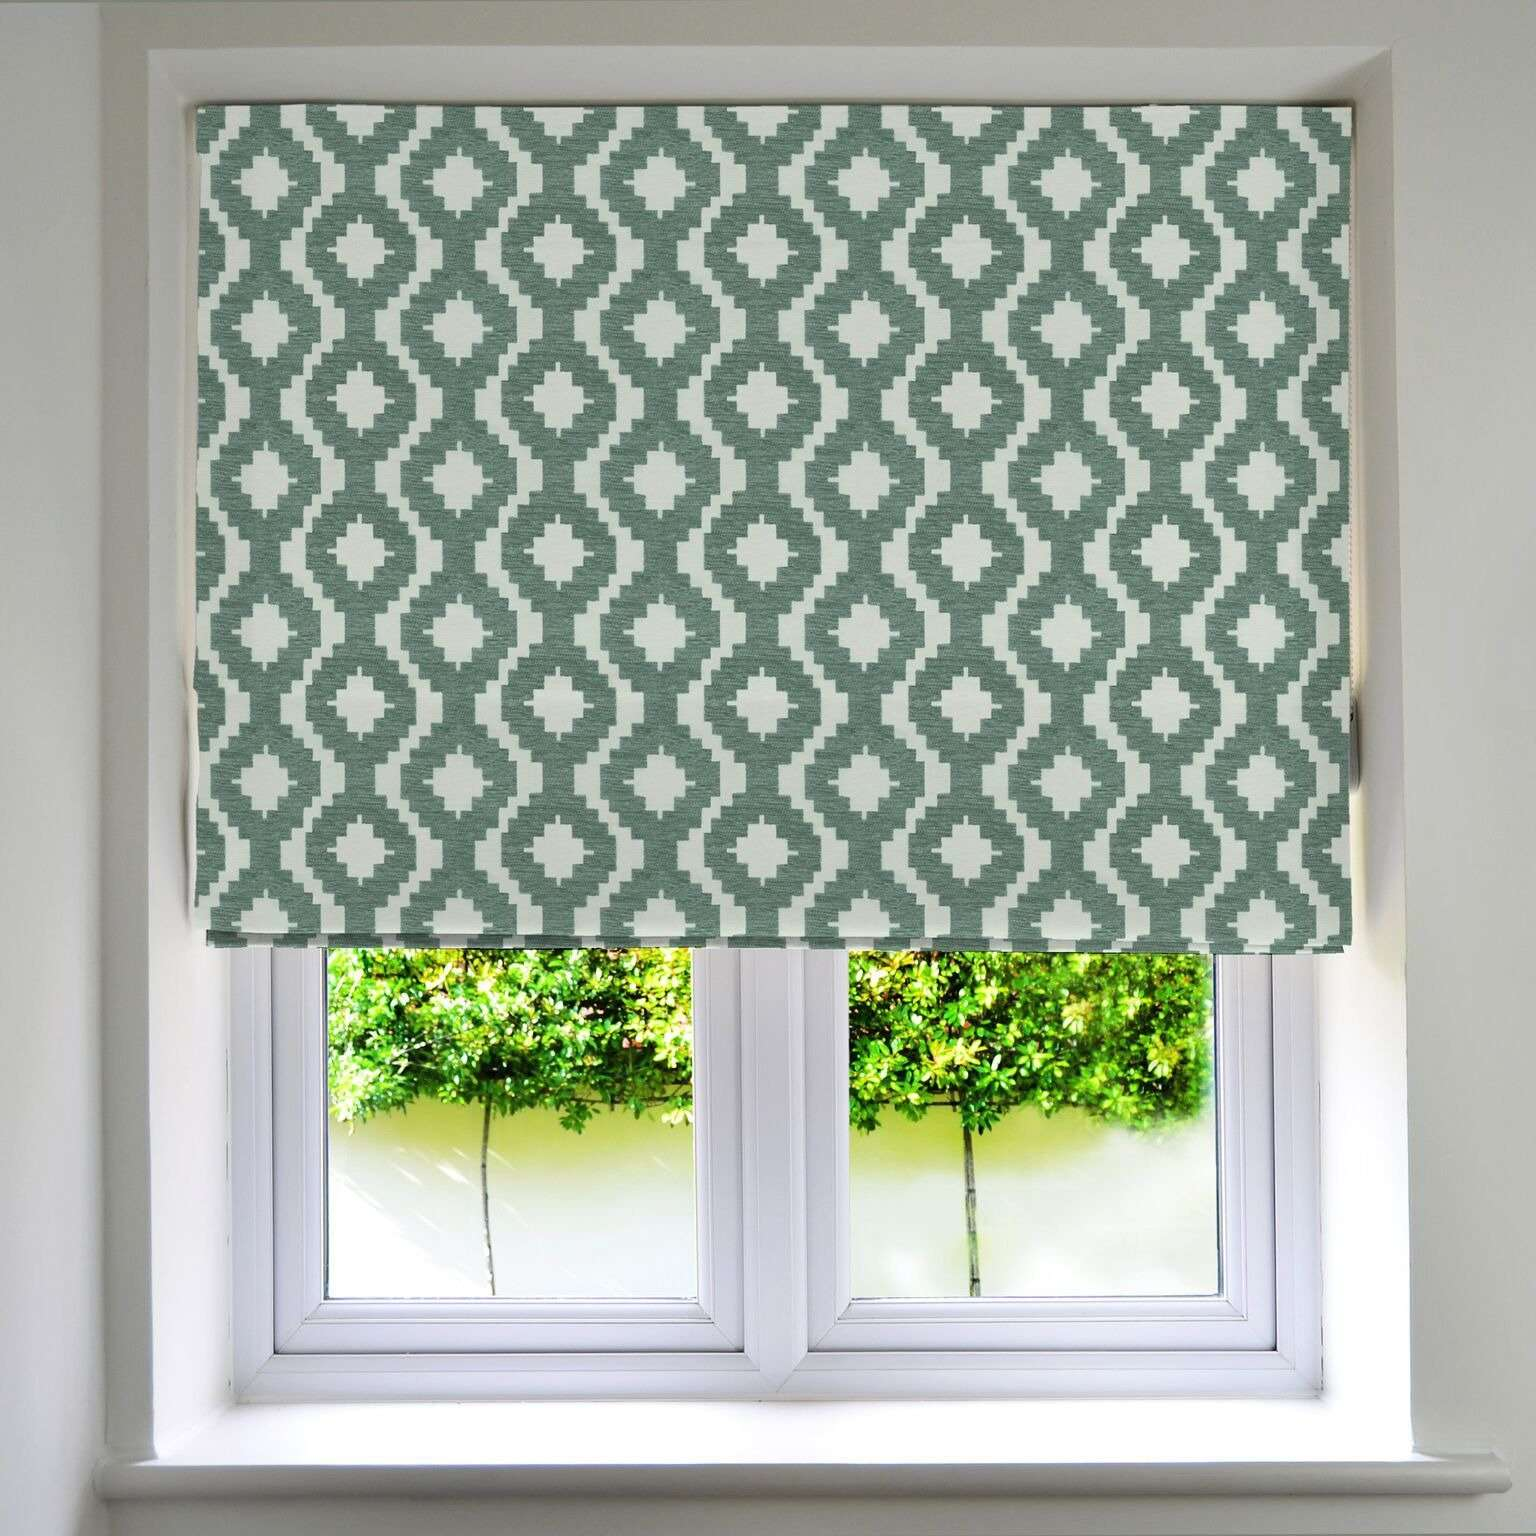 McAlister Textiles Arizona Geometric Duck Egg Blue Roman Blind Roman Blinds Standard Lining 130cm x 200cm Duck Egg Blue